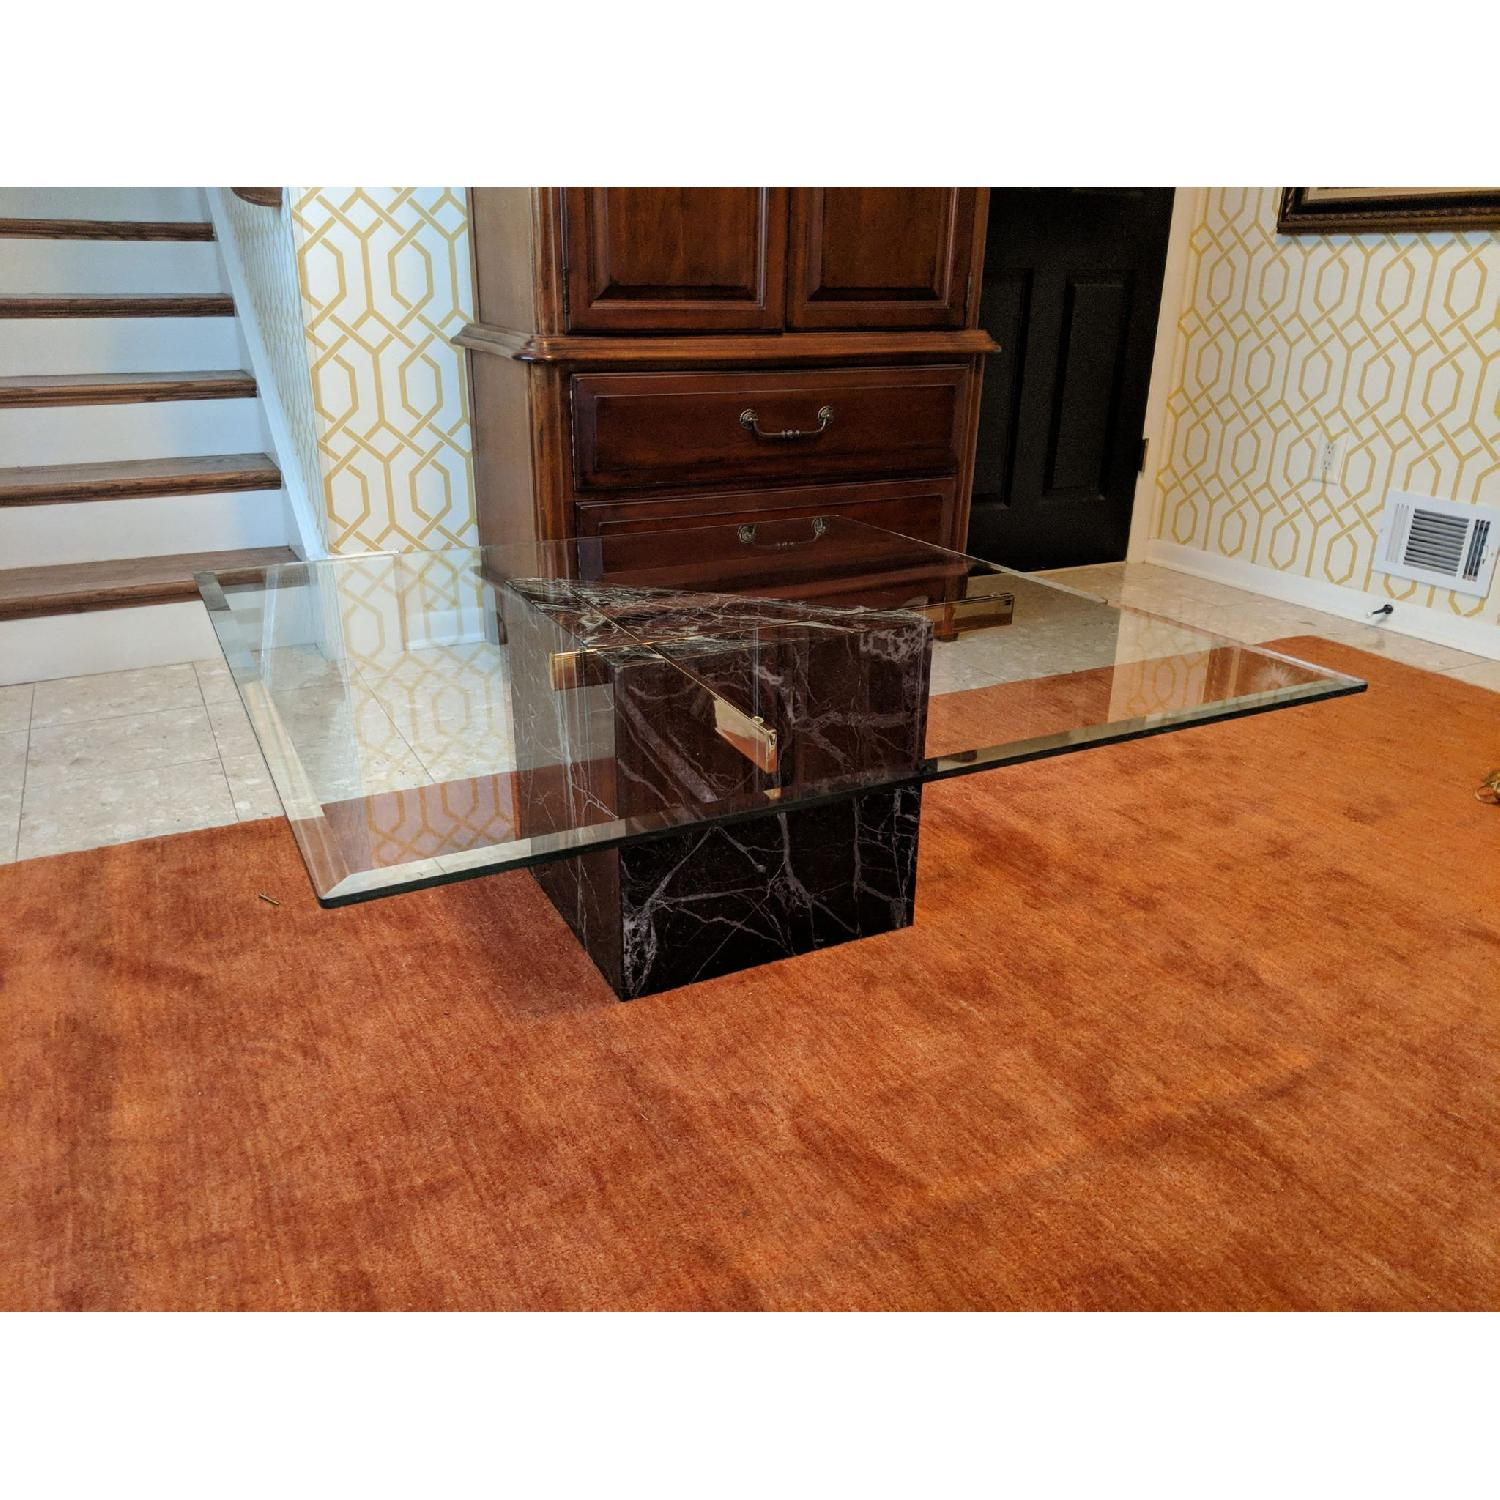 Artedi Marble Base Glass Top Coffee Table AptDeco - Marble base glass top coffee table